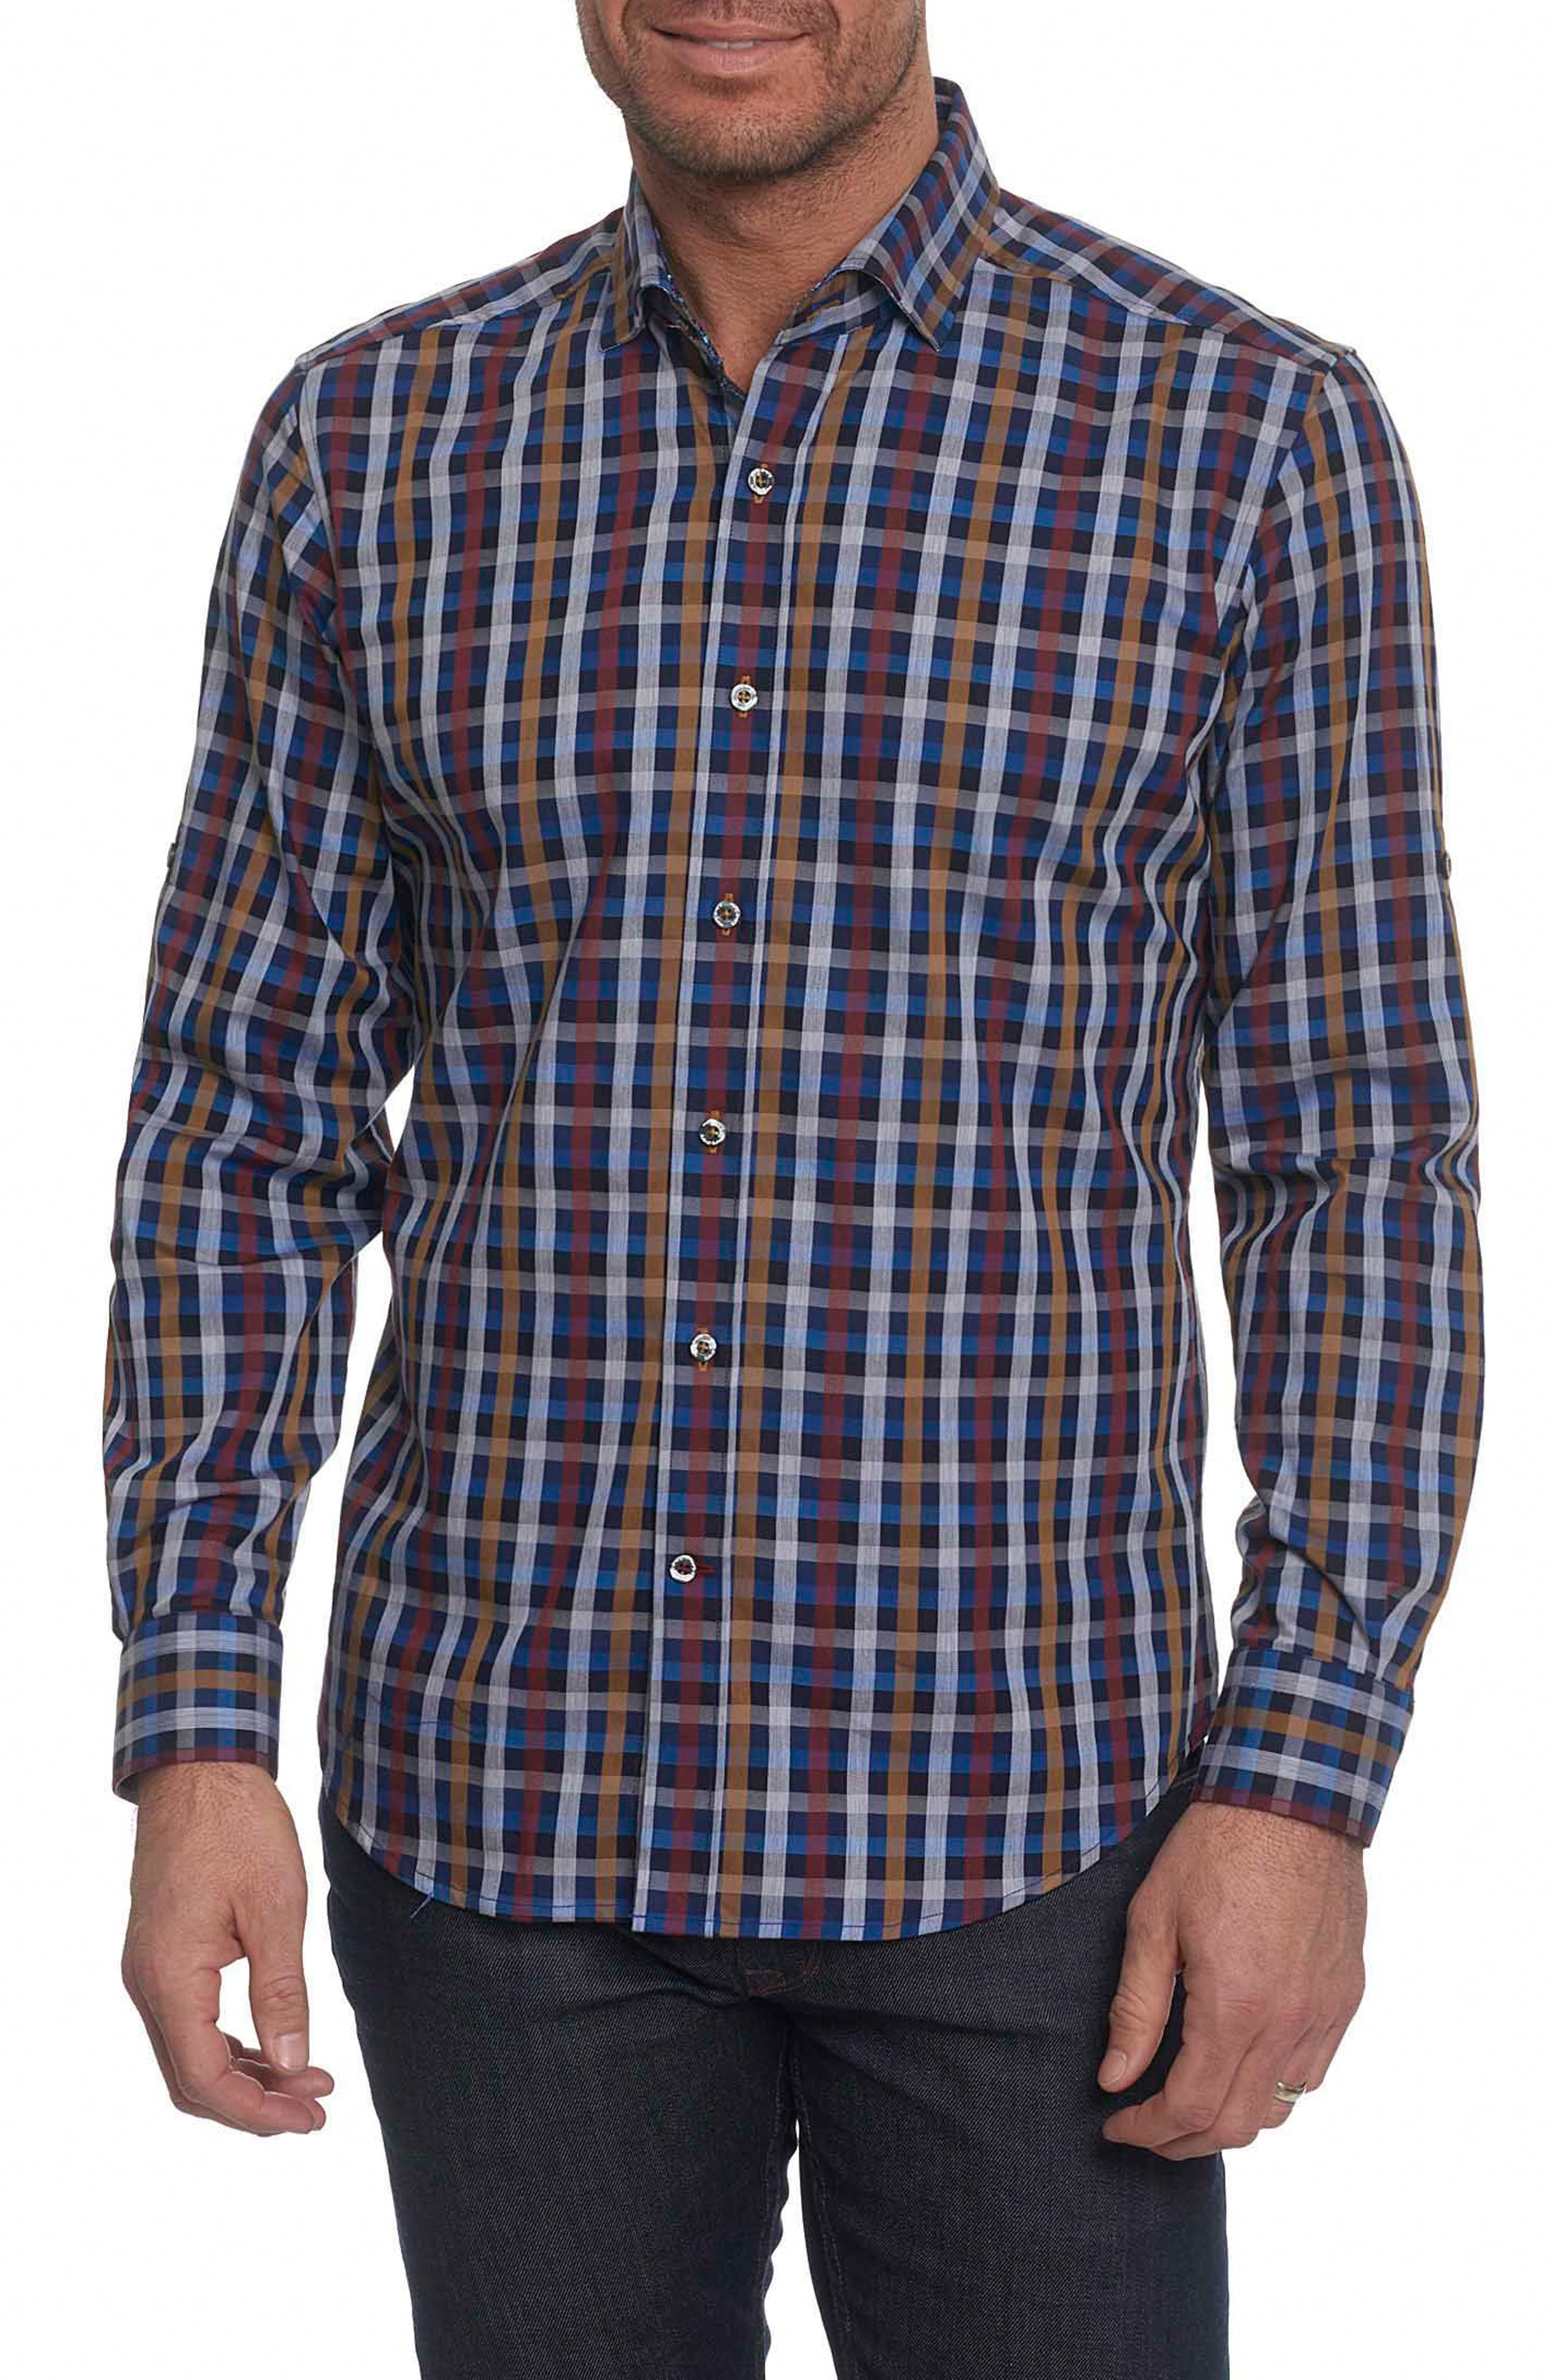 Carsons Tailored Fit Check Sport Shirt,                             Main thumbnail 1, color,                             Blue